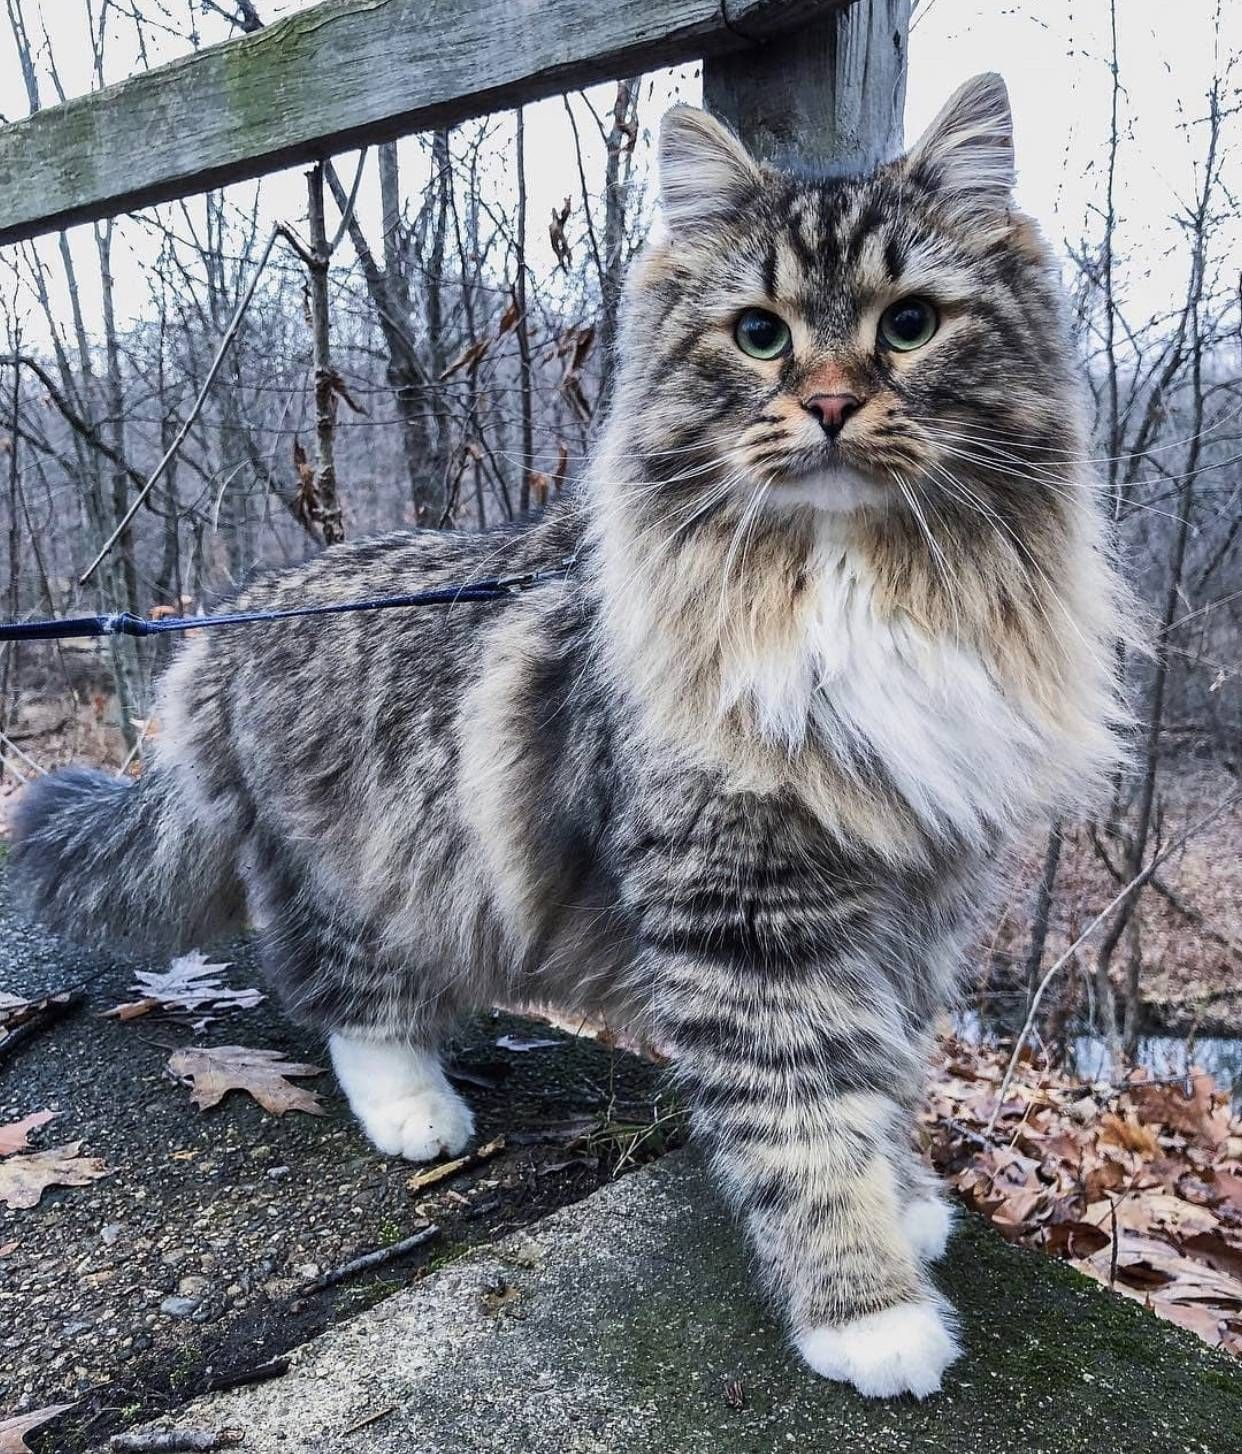 Such A Beautiful Cat Via Aww On January 23 2019 At 12 33am